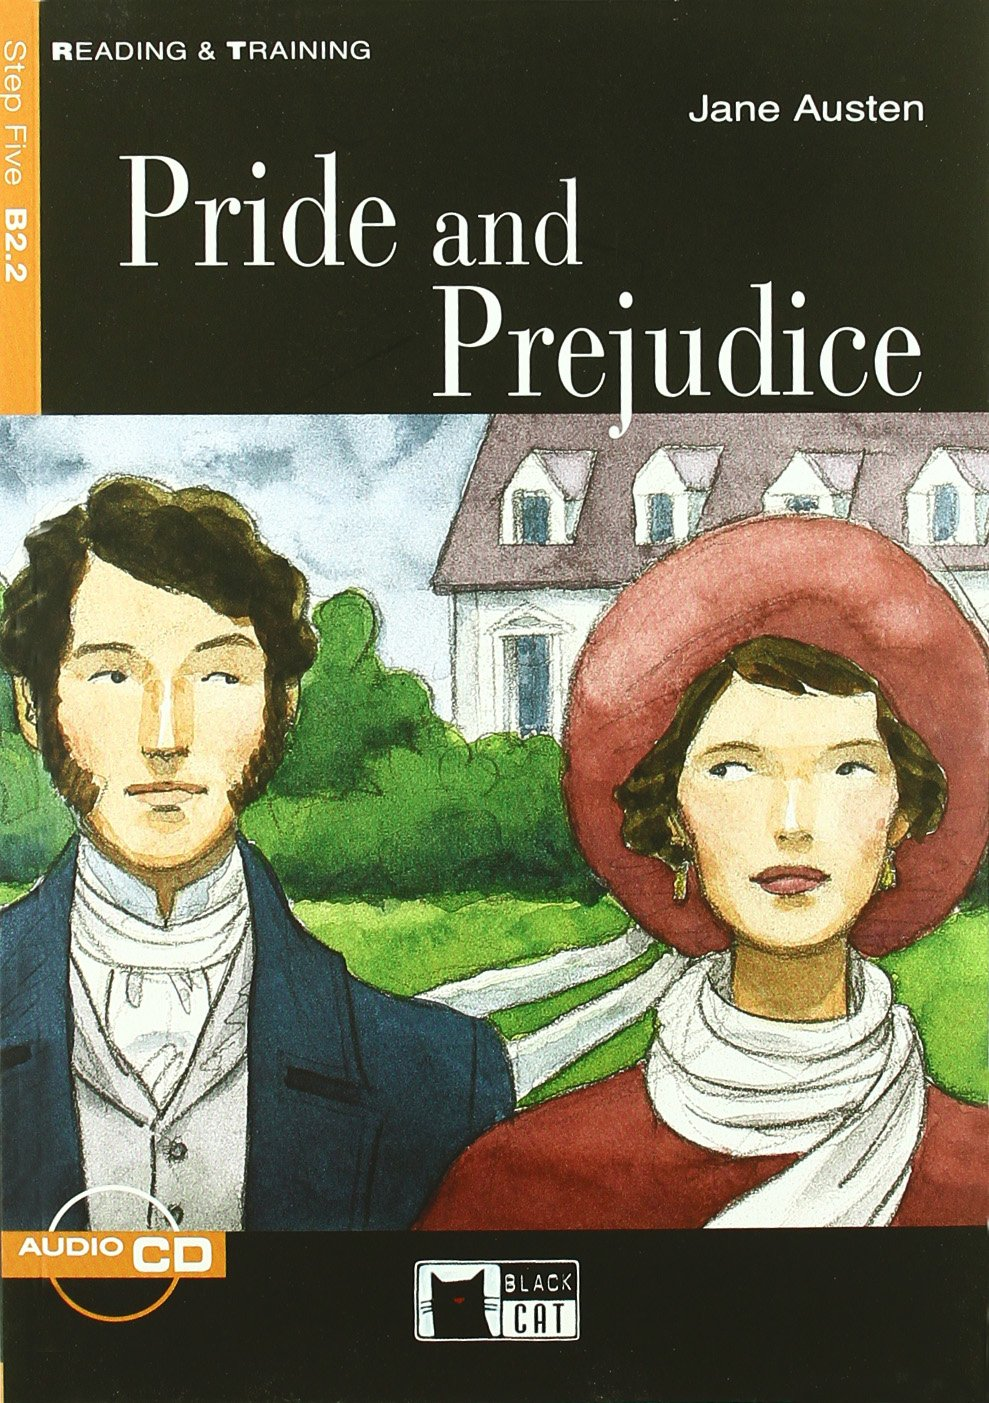 the theme of marriage in jane austens novel pride and prejudice